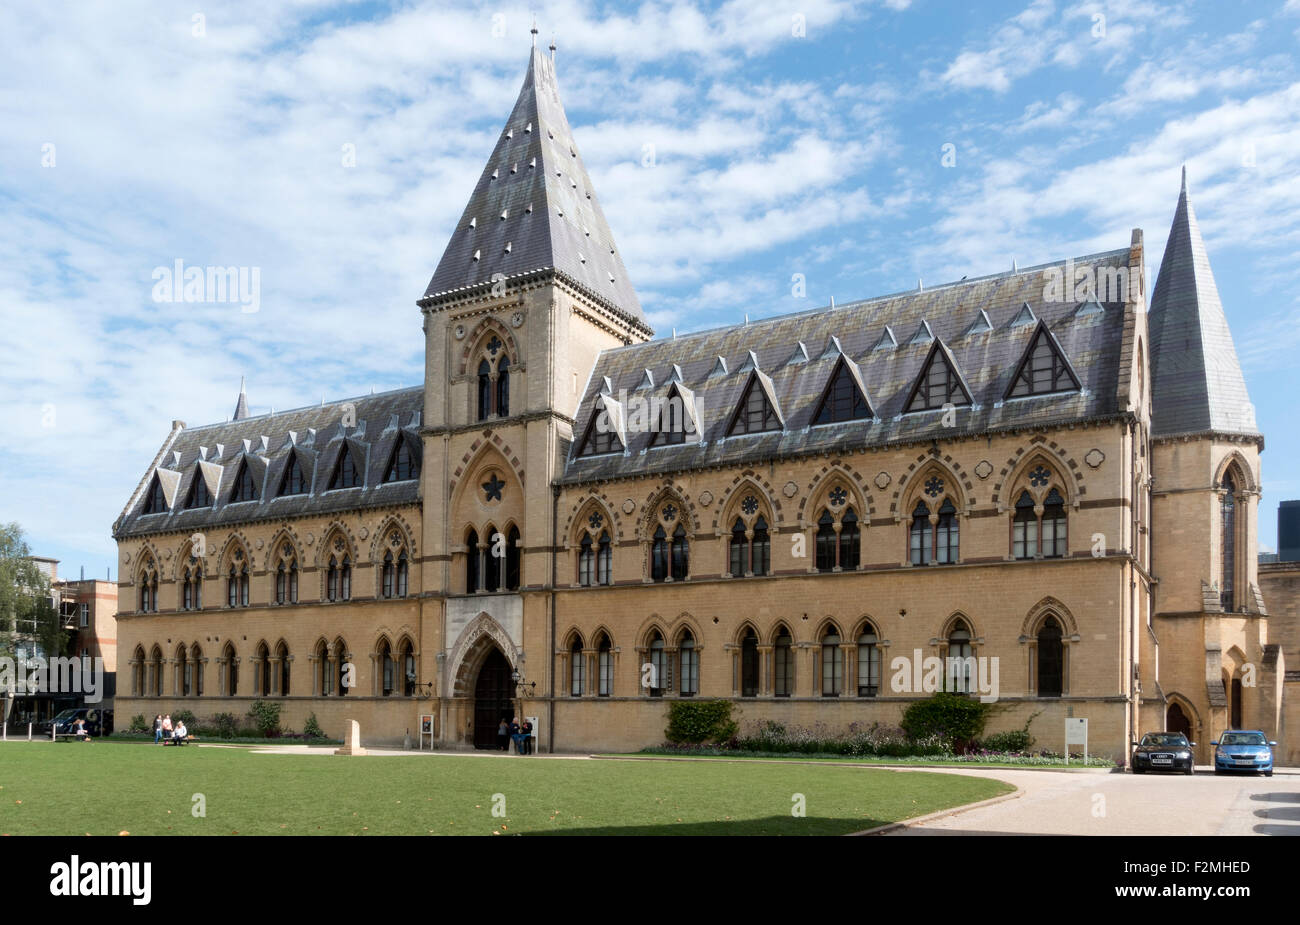 The Natural History Museum, Oxford -1 - Stock Image